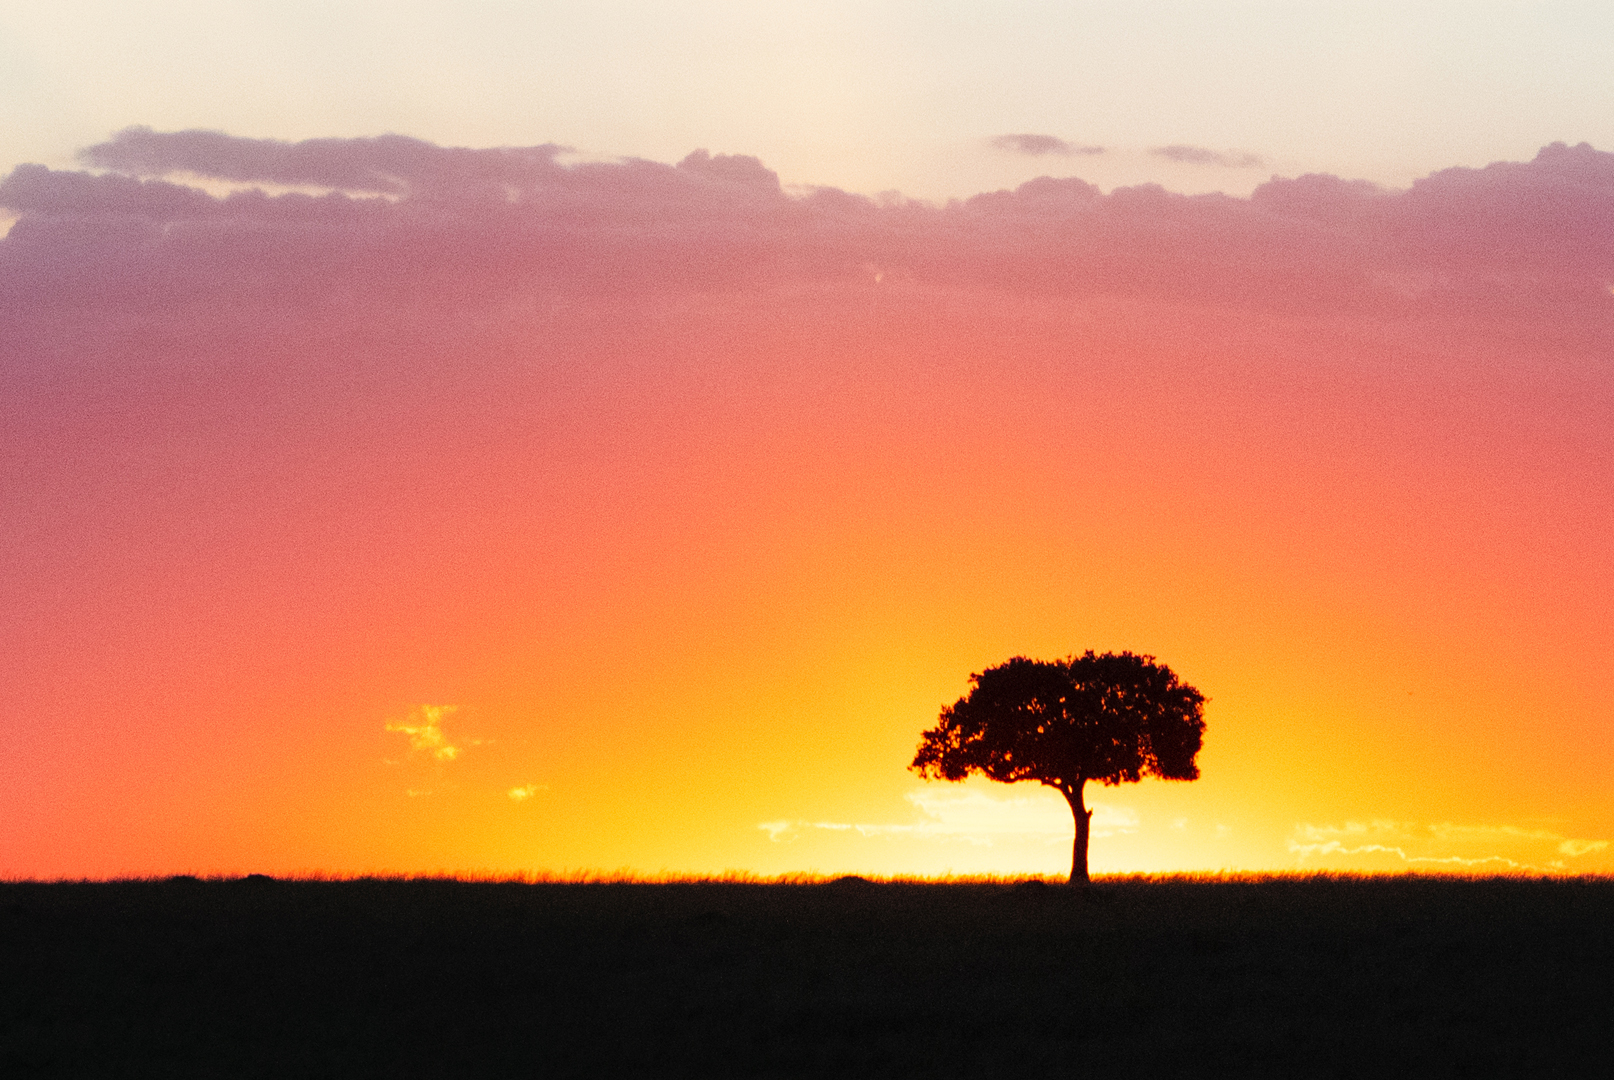 Solitary Tree Silhouette at Colorful African Sunset.jpg